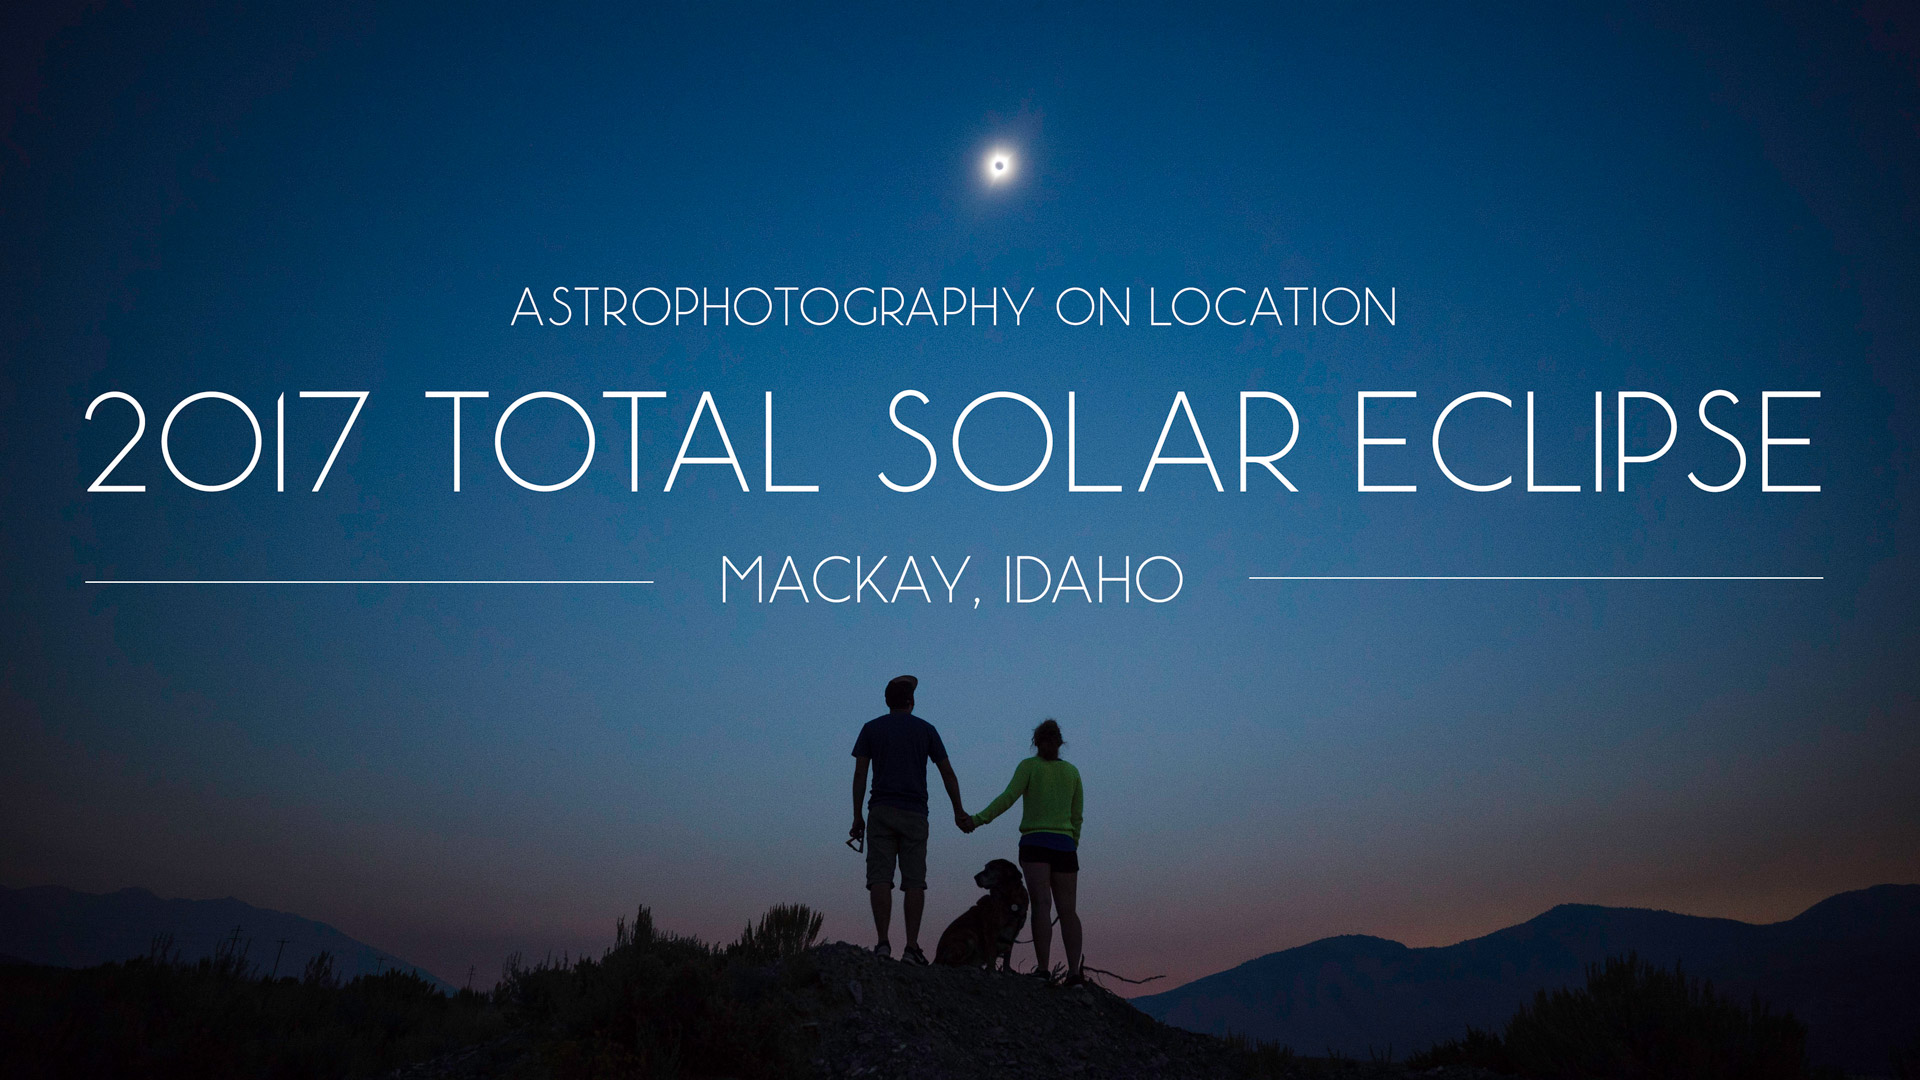 Astrophotography On Location: 2017 Total Solar Eclipse – Mackay Idaho